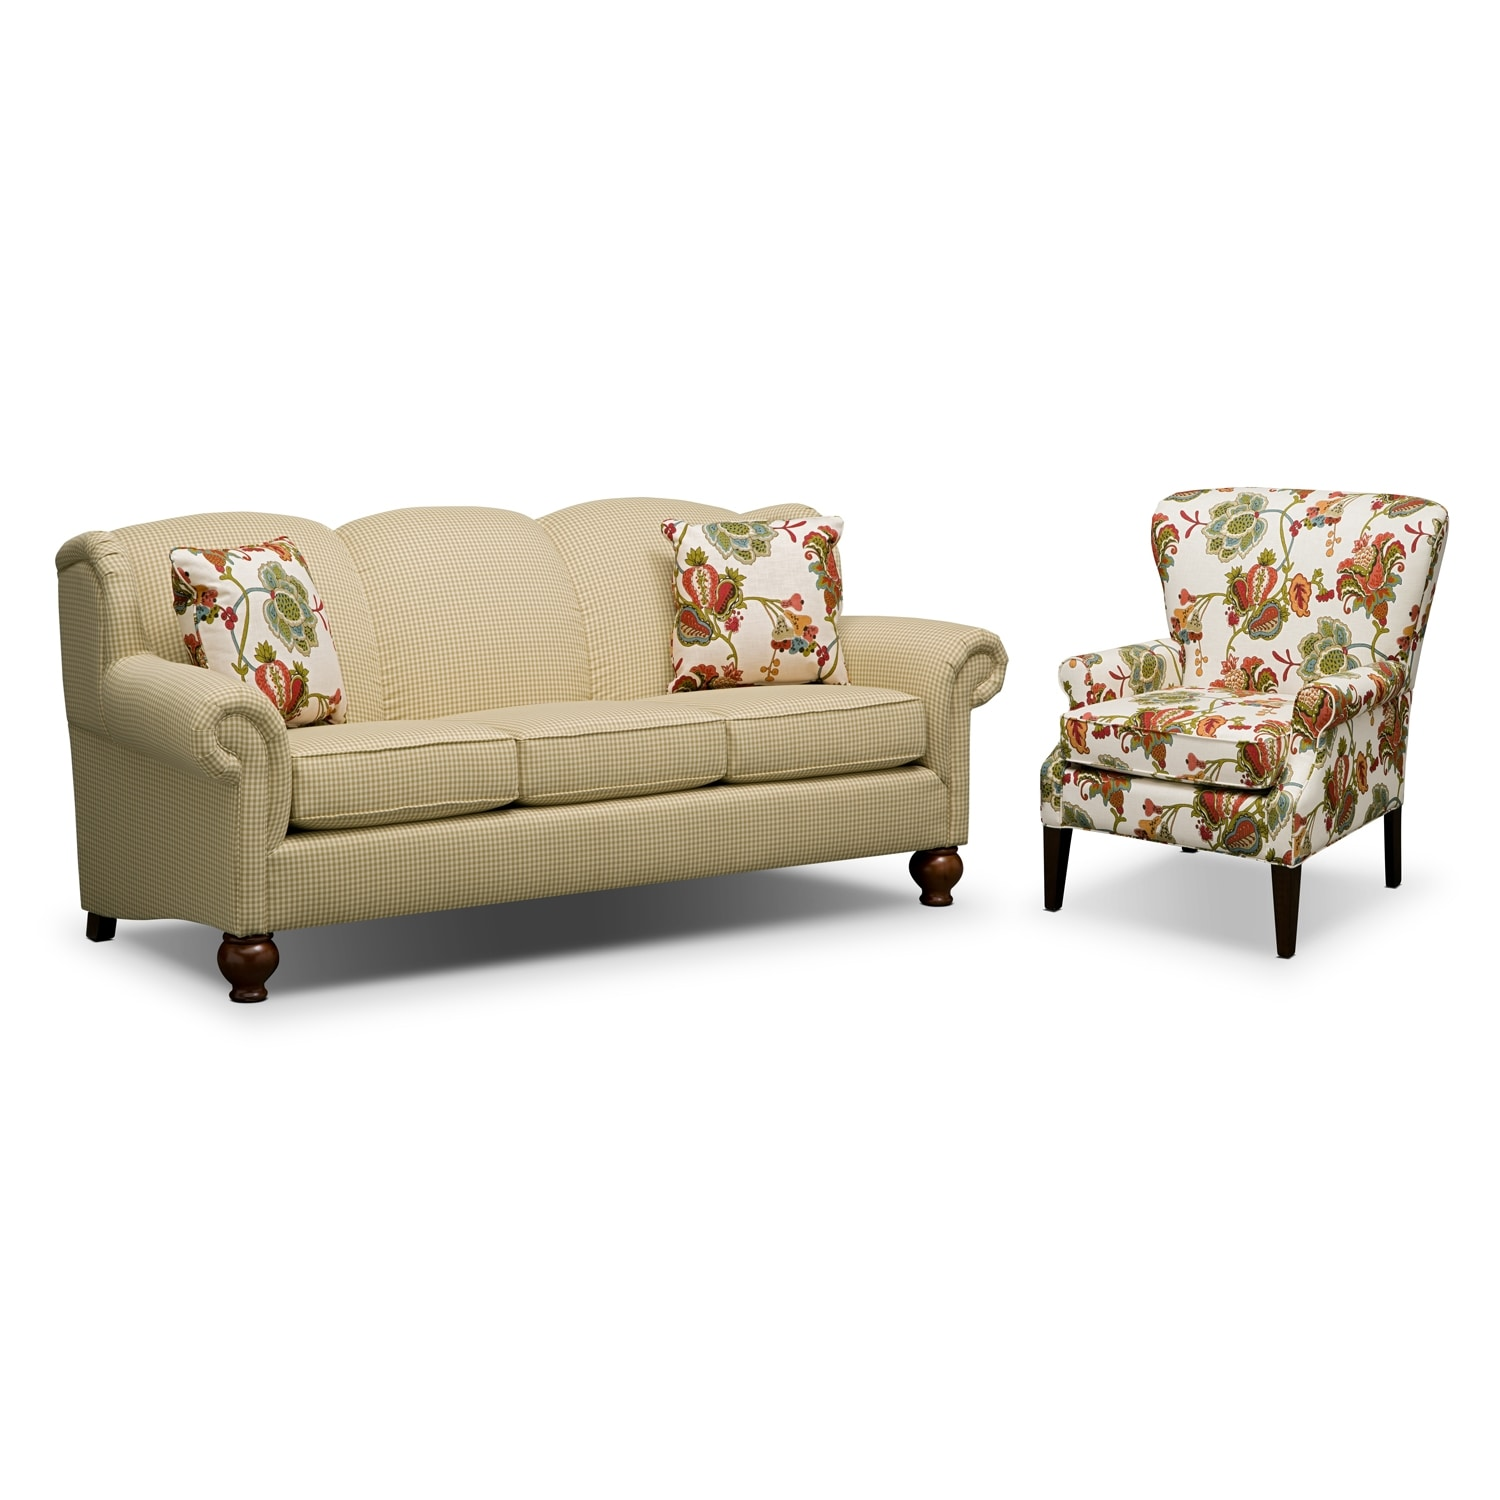 Living Room Furniture - Charlotte II 2 Pc. Living Room w/ Accent Chair